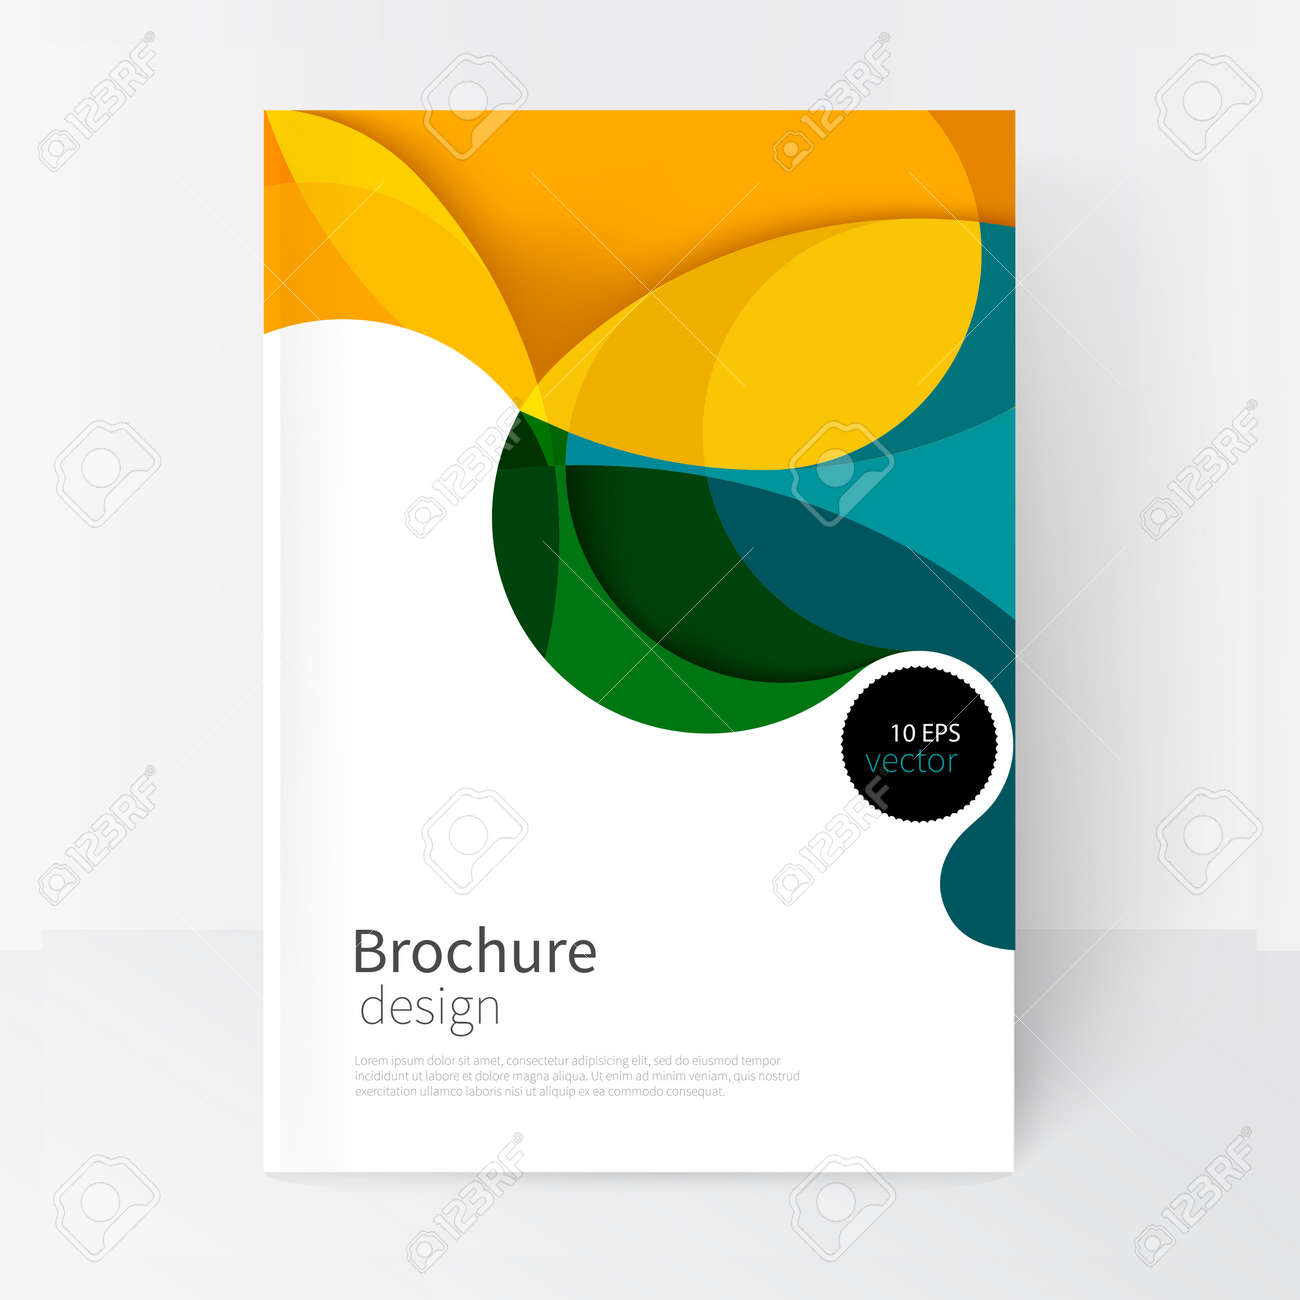 vector white business brochure cover template.modern abstract background green, yellow and blue waves - 65590328